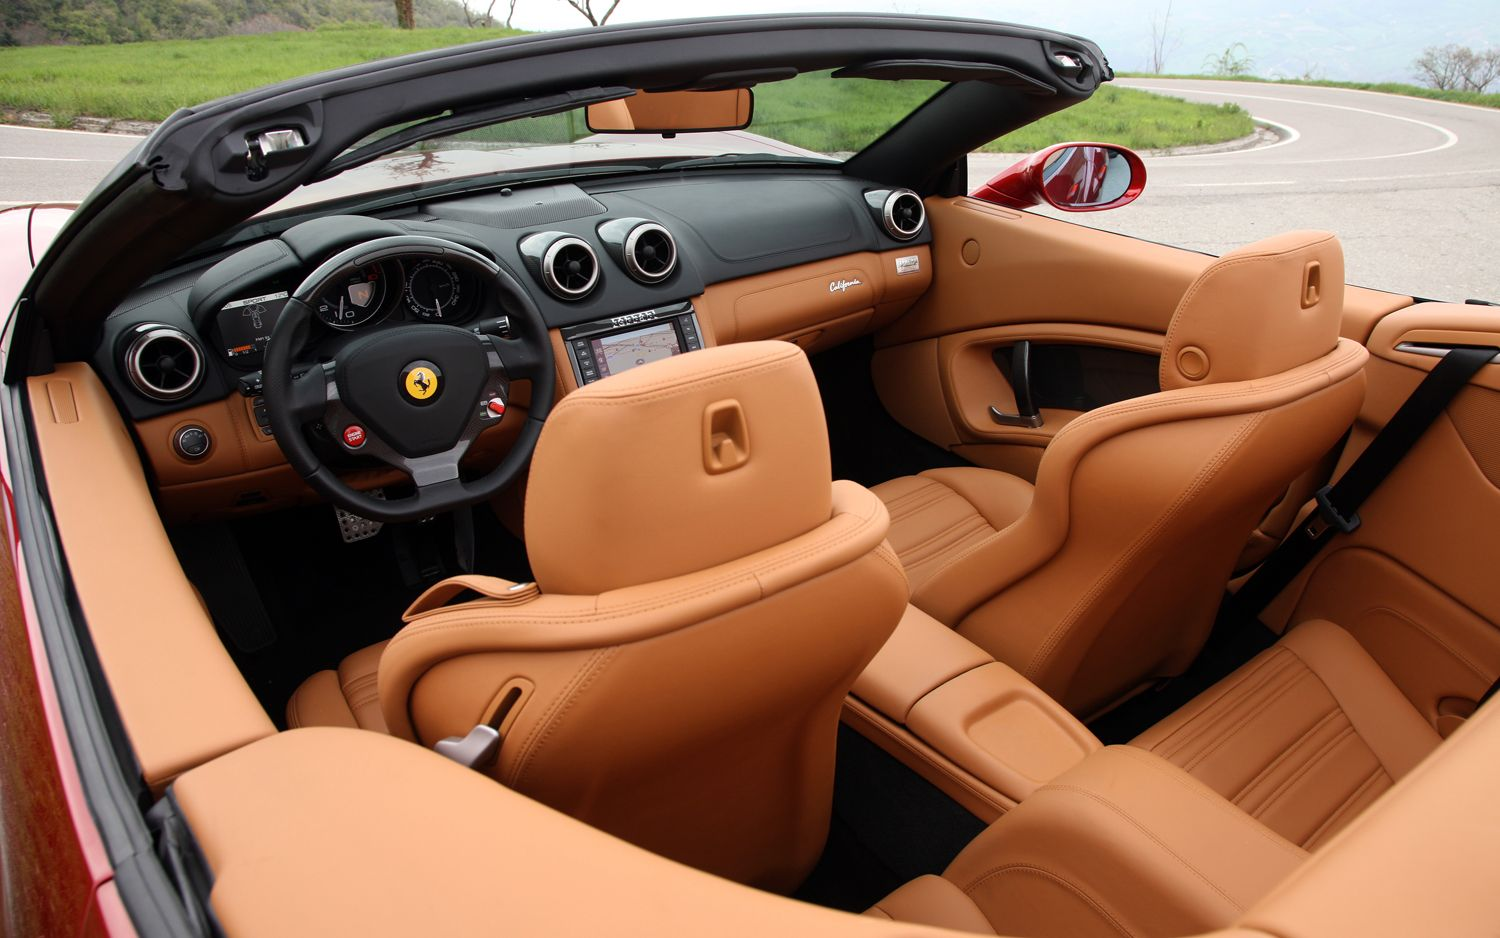 Ferrari California interior #16 | Ferrari California | Pinterest ...